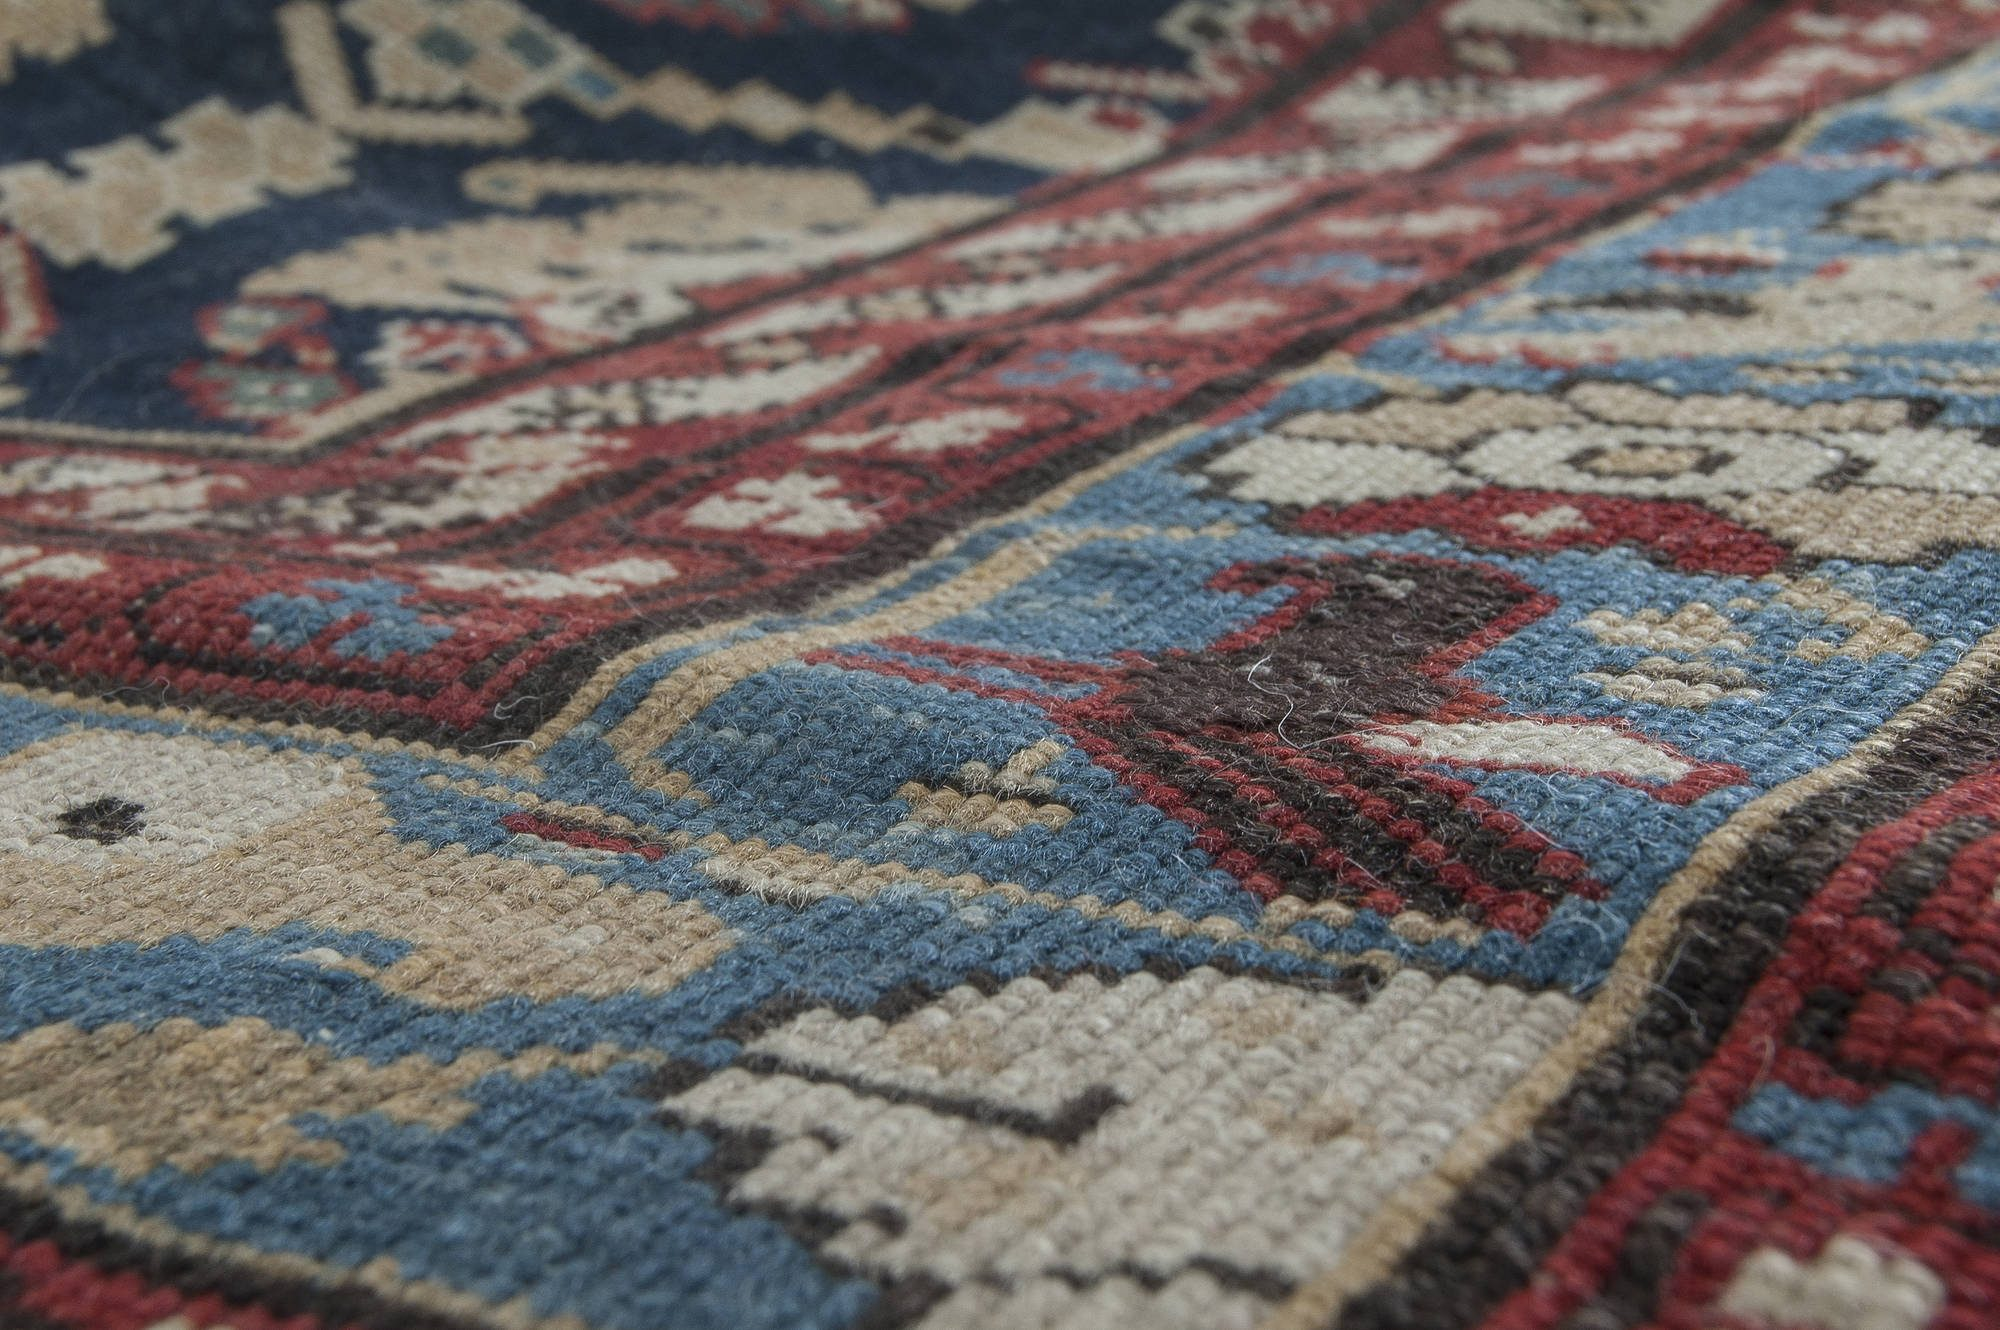 19th Century Caucasian Red, Gold and Blue Handwoven Wool Rug BB3518